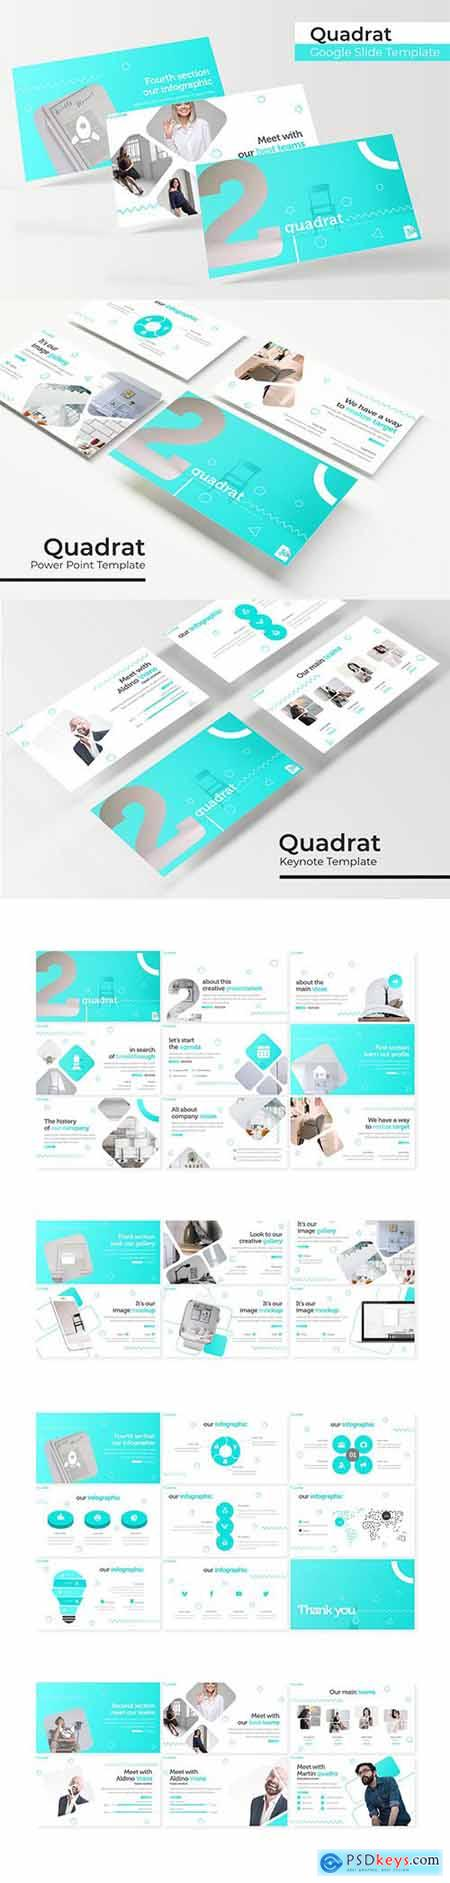 Quadrat - Powerpoint, Keynote and Google Slides Templates